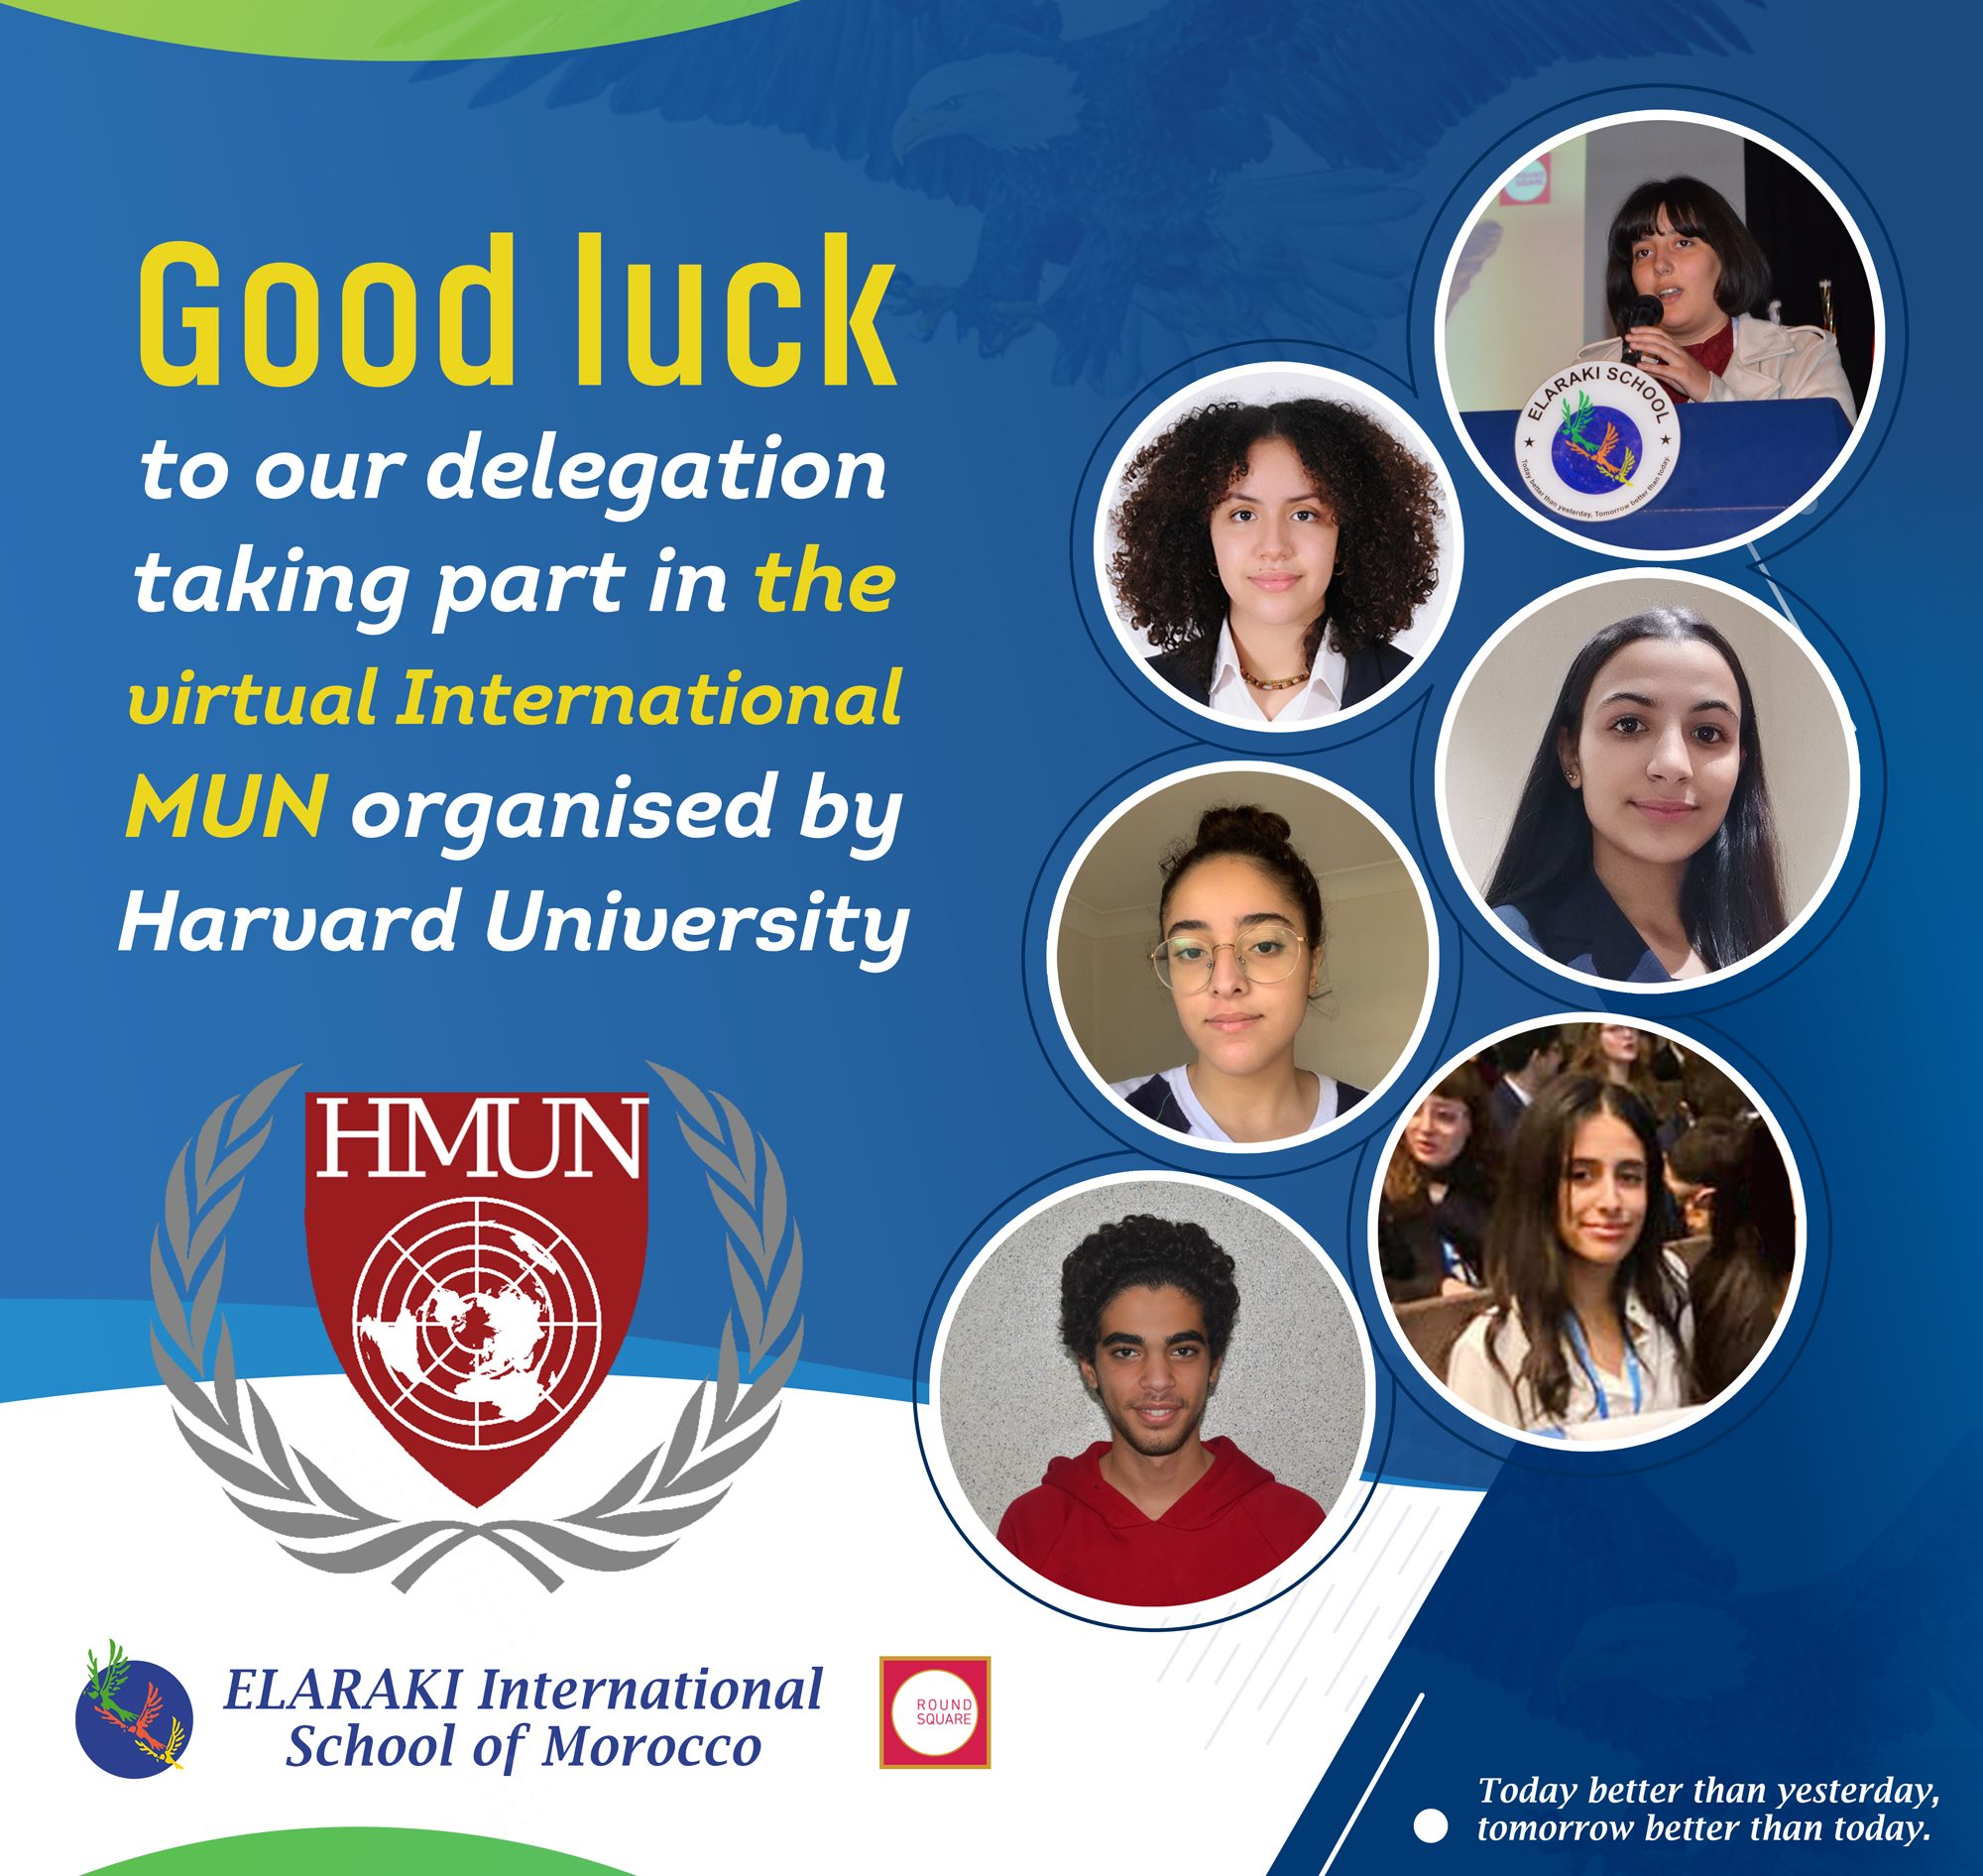 Good luck to our delegates taking part in the virtual International MUN organised by Harvard University